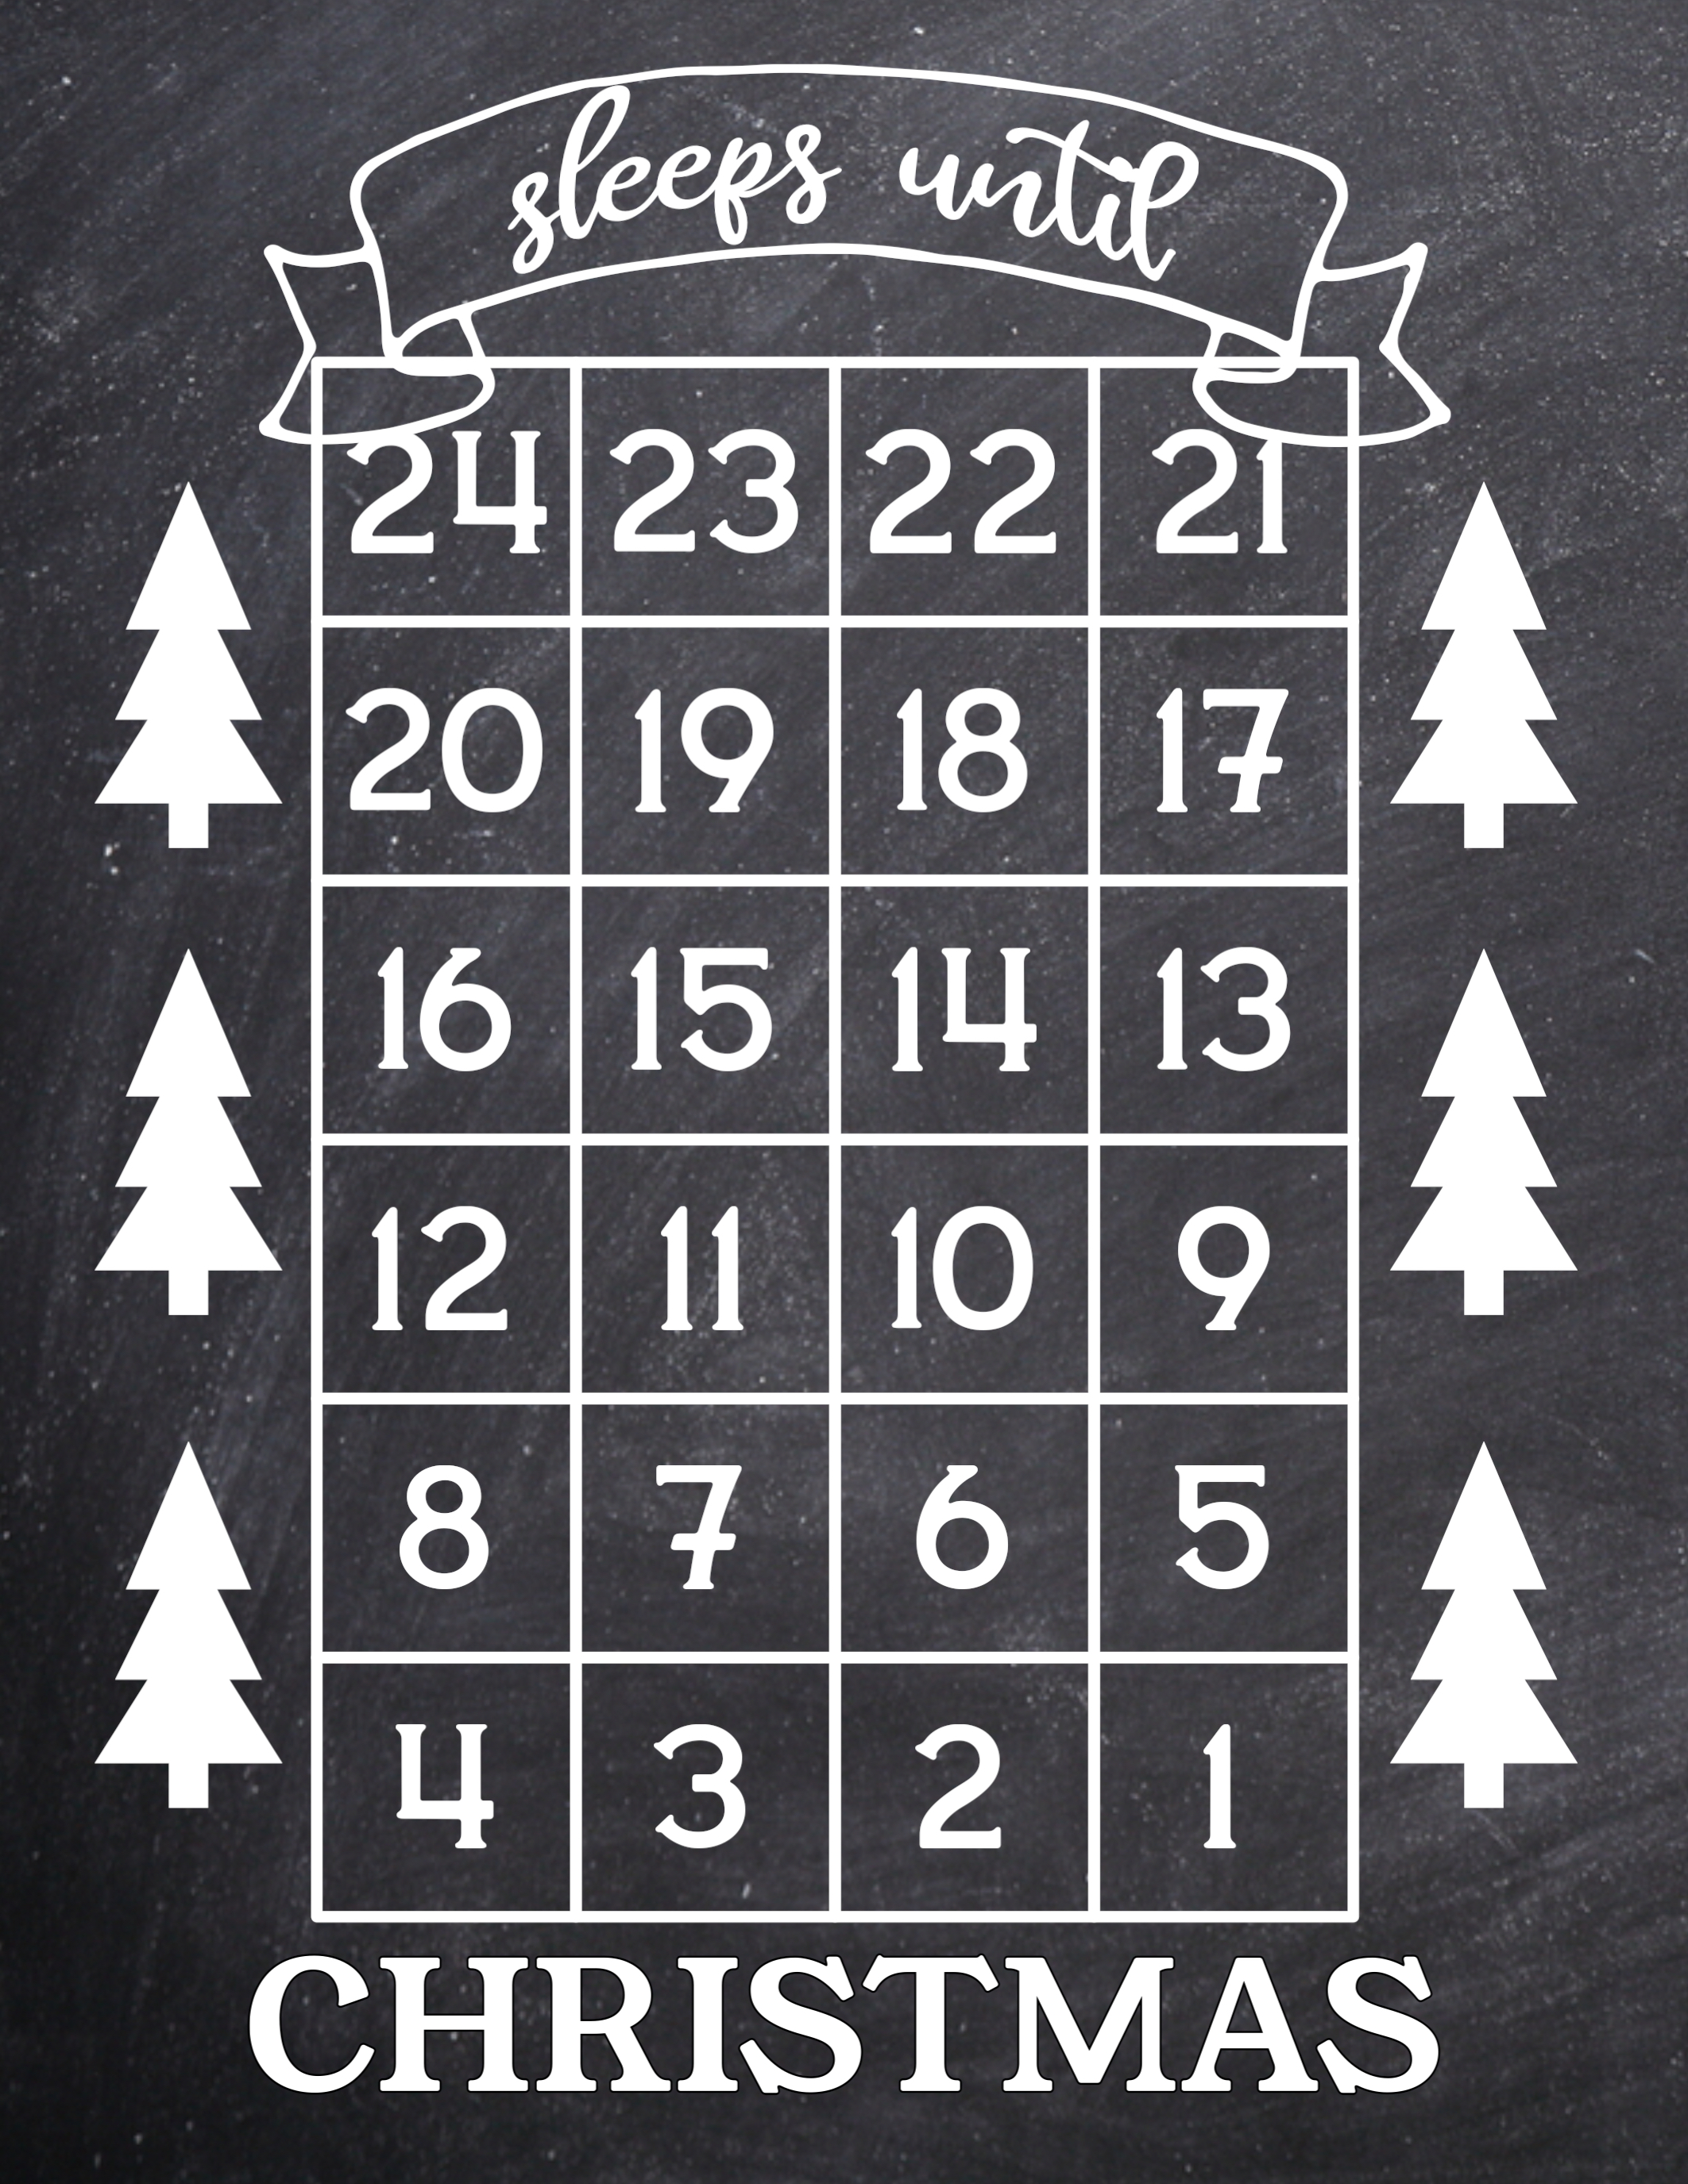 Days Till Christmas Chalkboard.How Many Days Until Christmas Free Printable Paper Trail